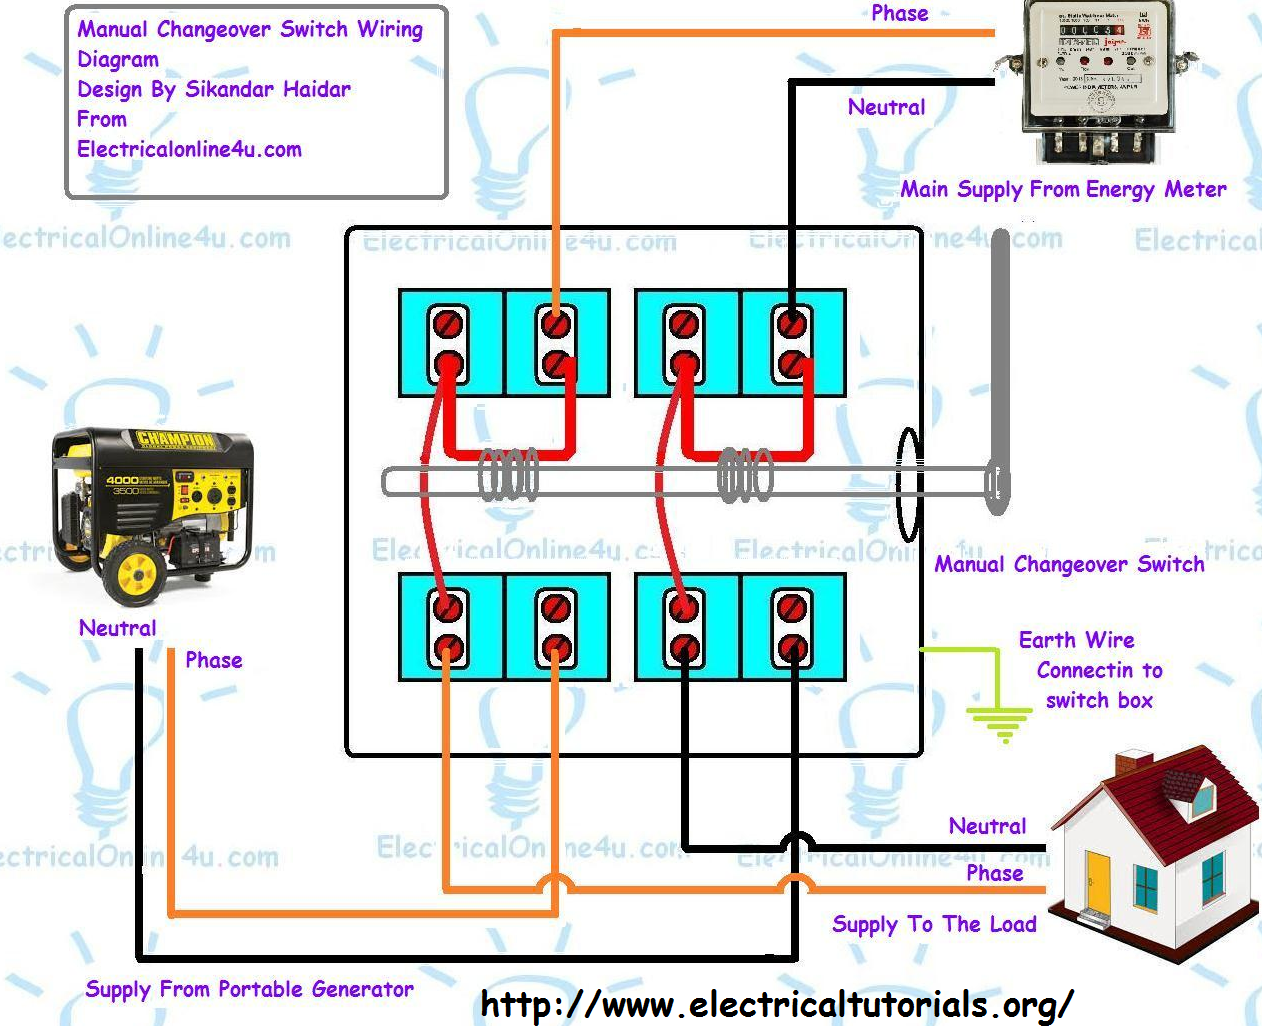 Generator Wiring Schematic Diagram : Portable generator changeover switch wiring diagram